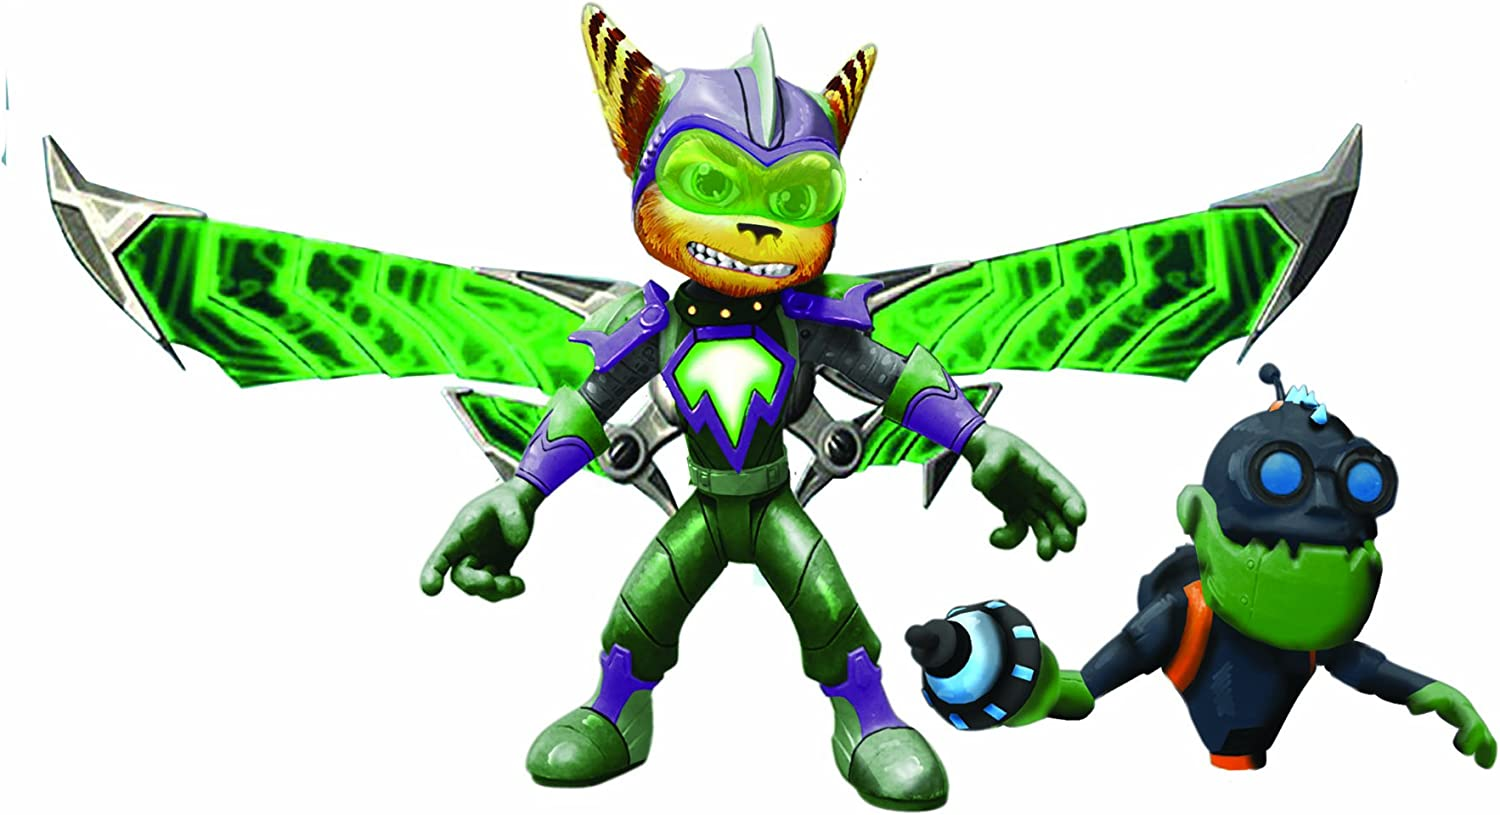 Ratchet Clank Series 1 Armored Ratchet With Mr Zurkon Action